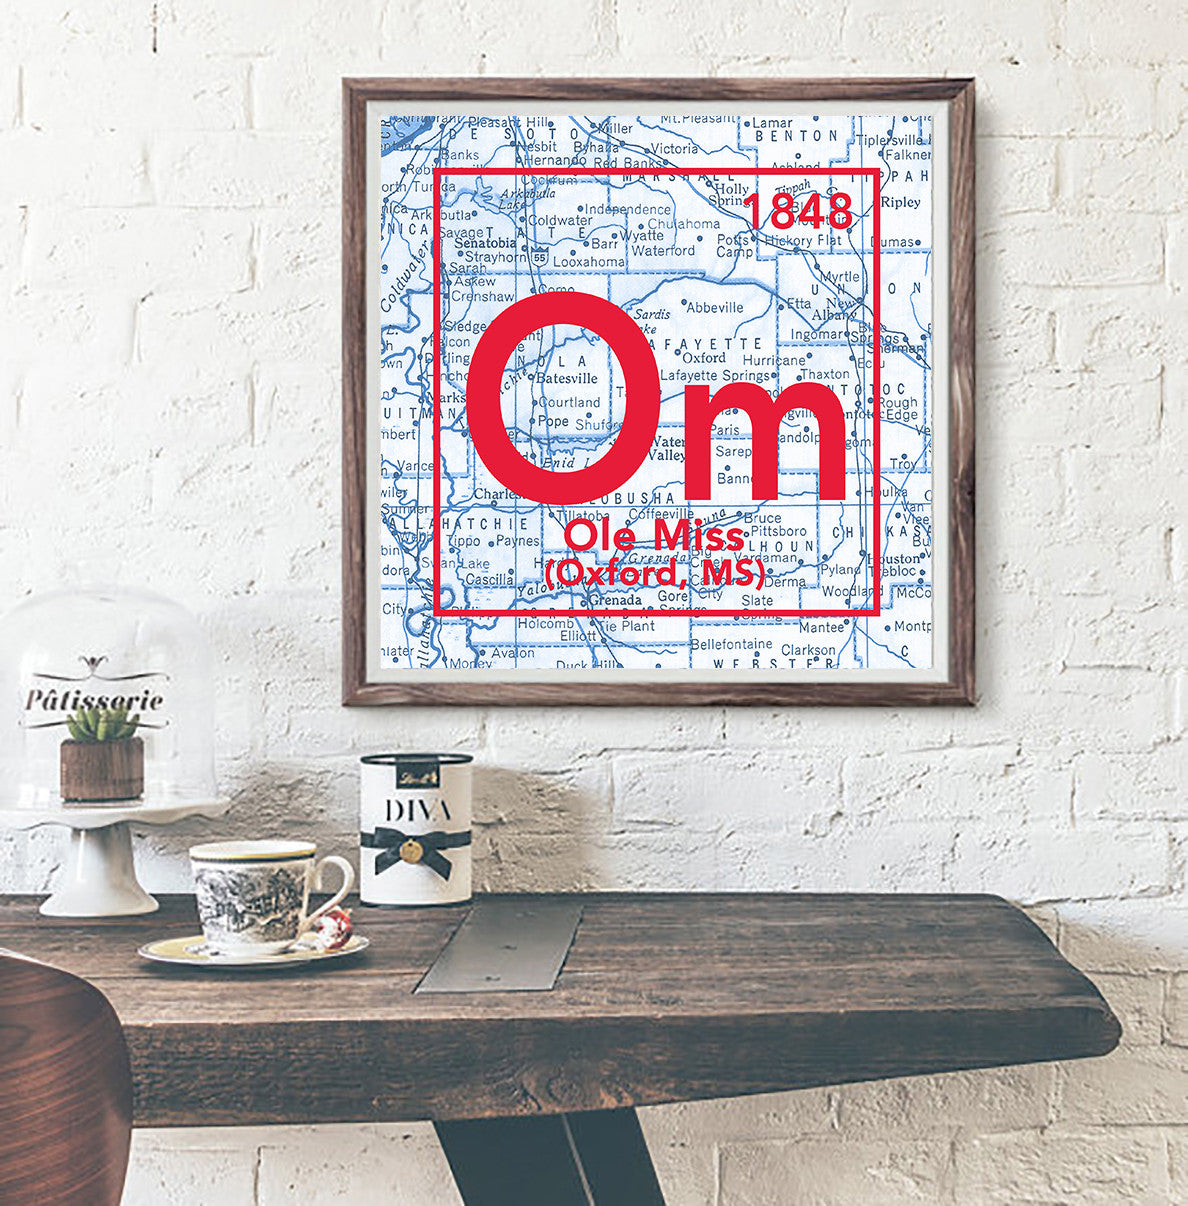 Ole miss oxford mississippi vintage periodic map art print ole miss oxford mississippi vintage periodic map art print urtaz